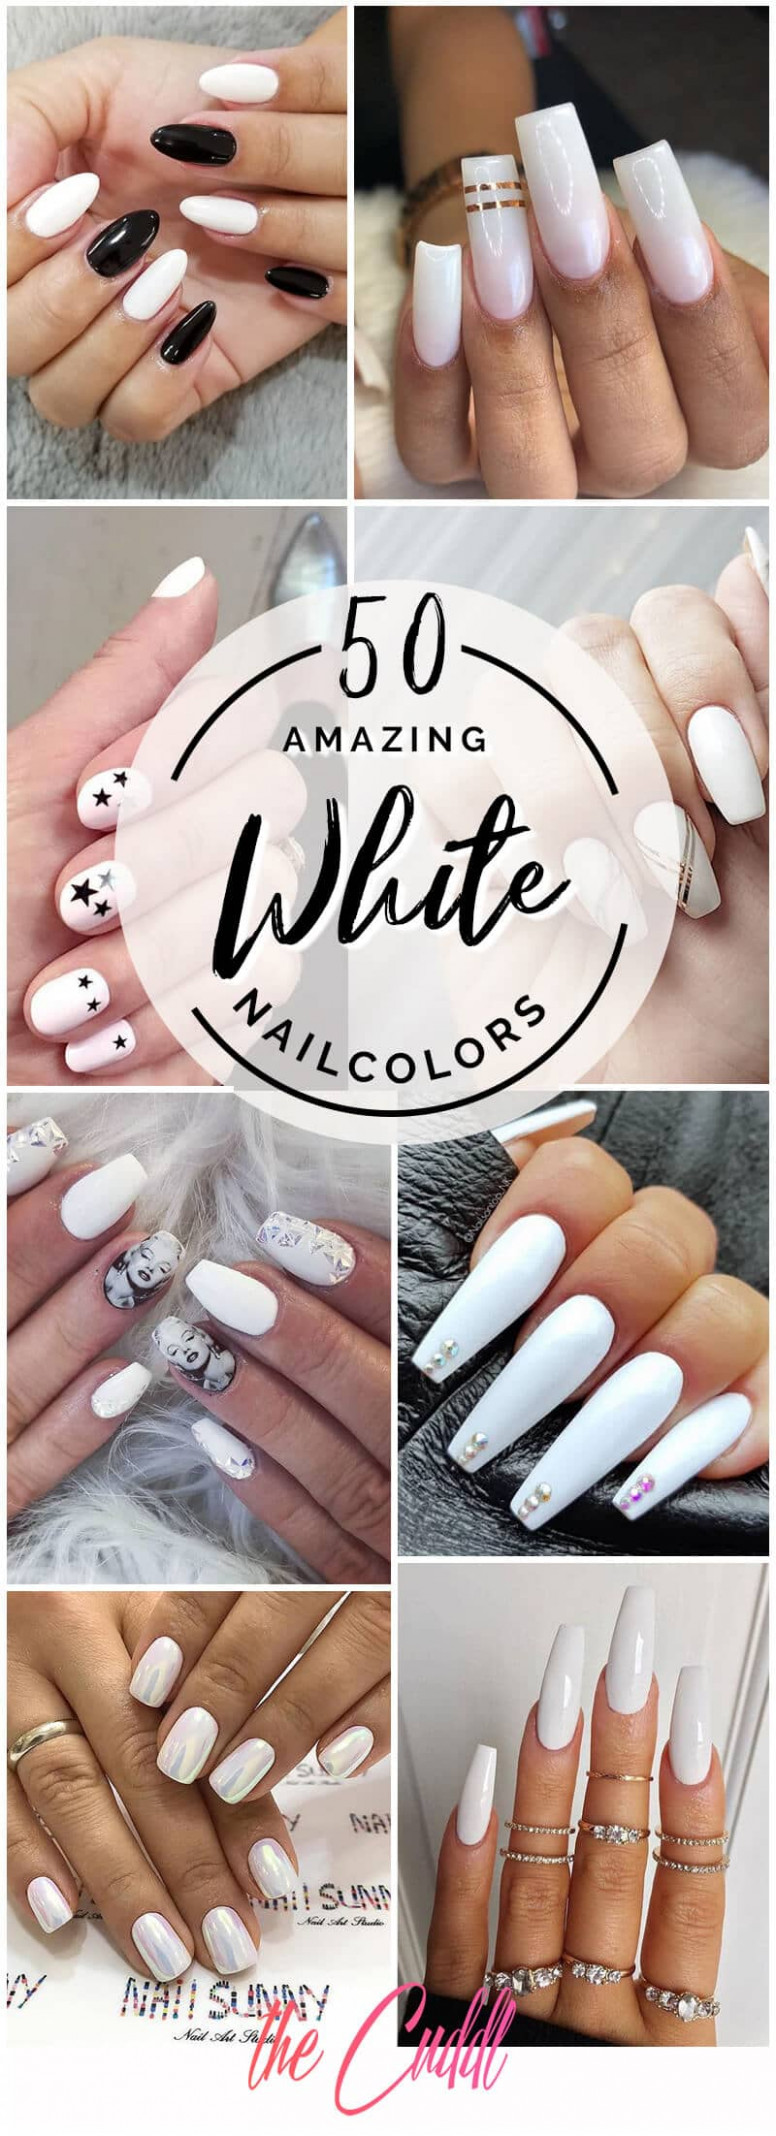 10 Fun and Fashionable White Nail Design Ideas for Any Occasion in